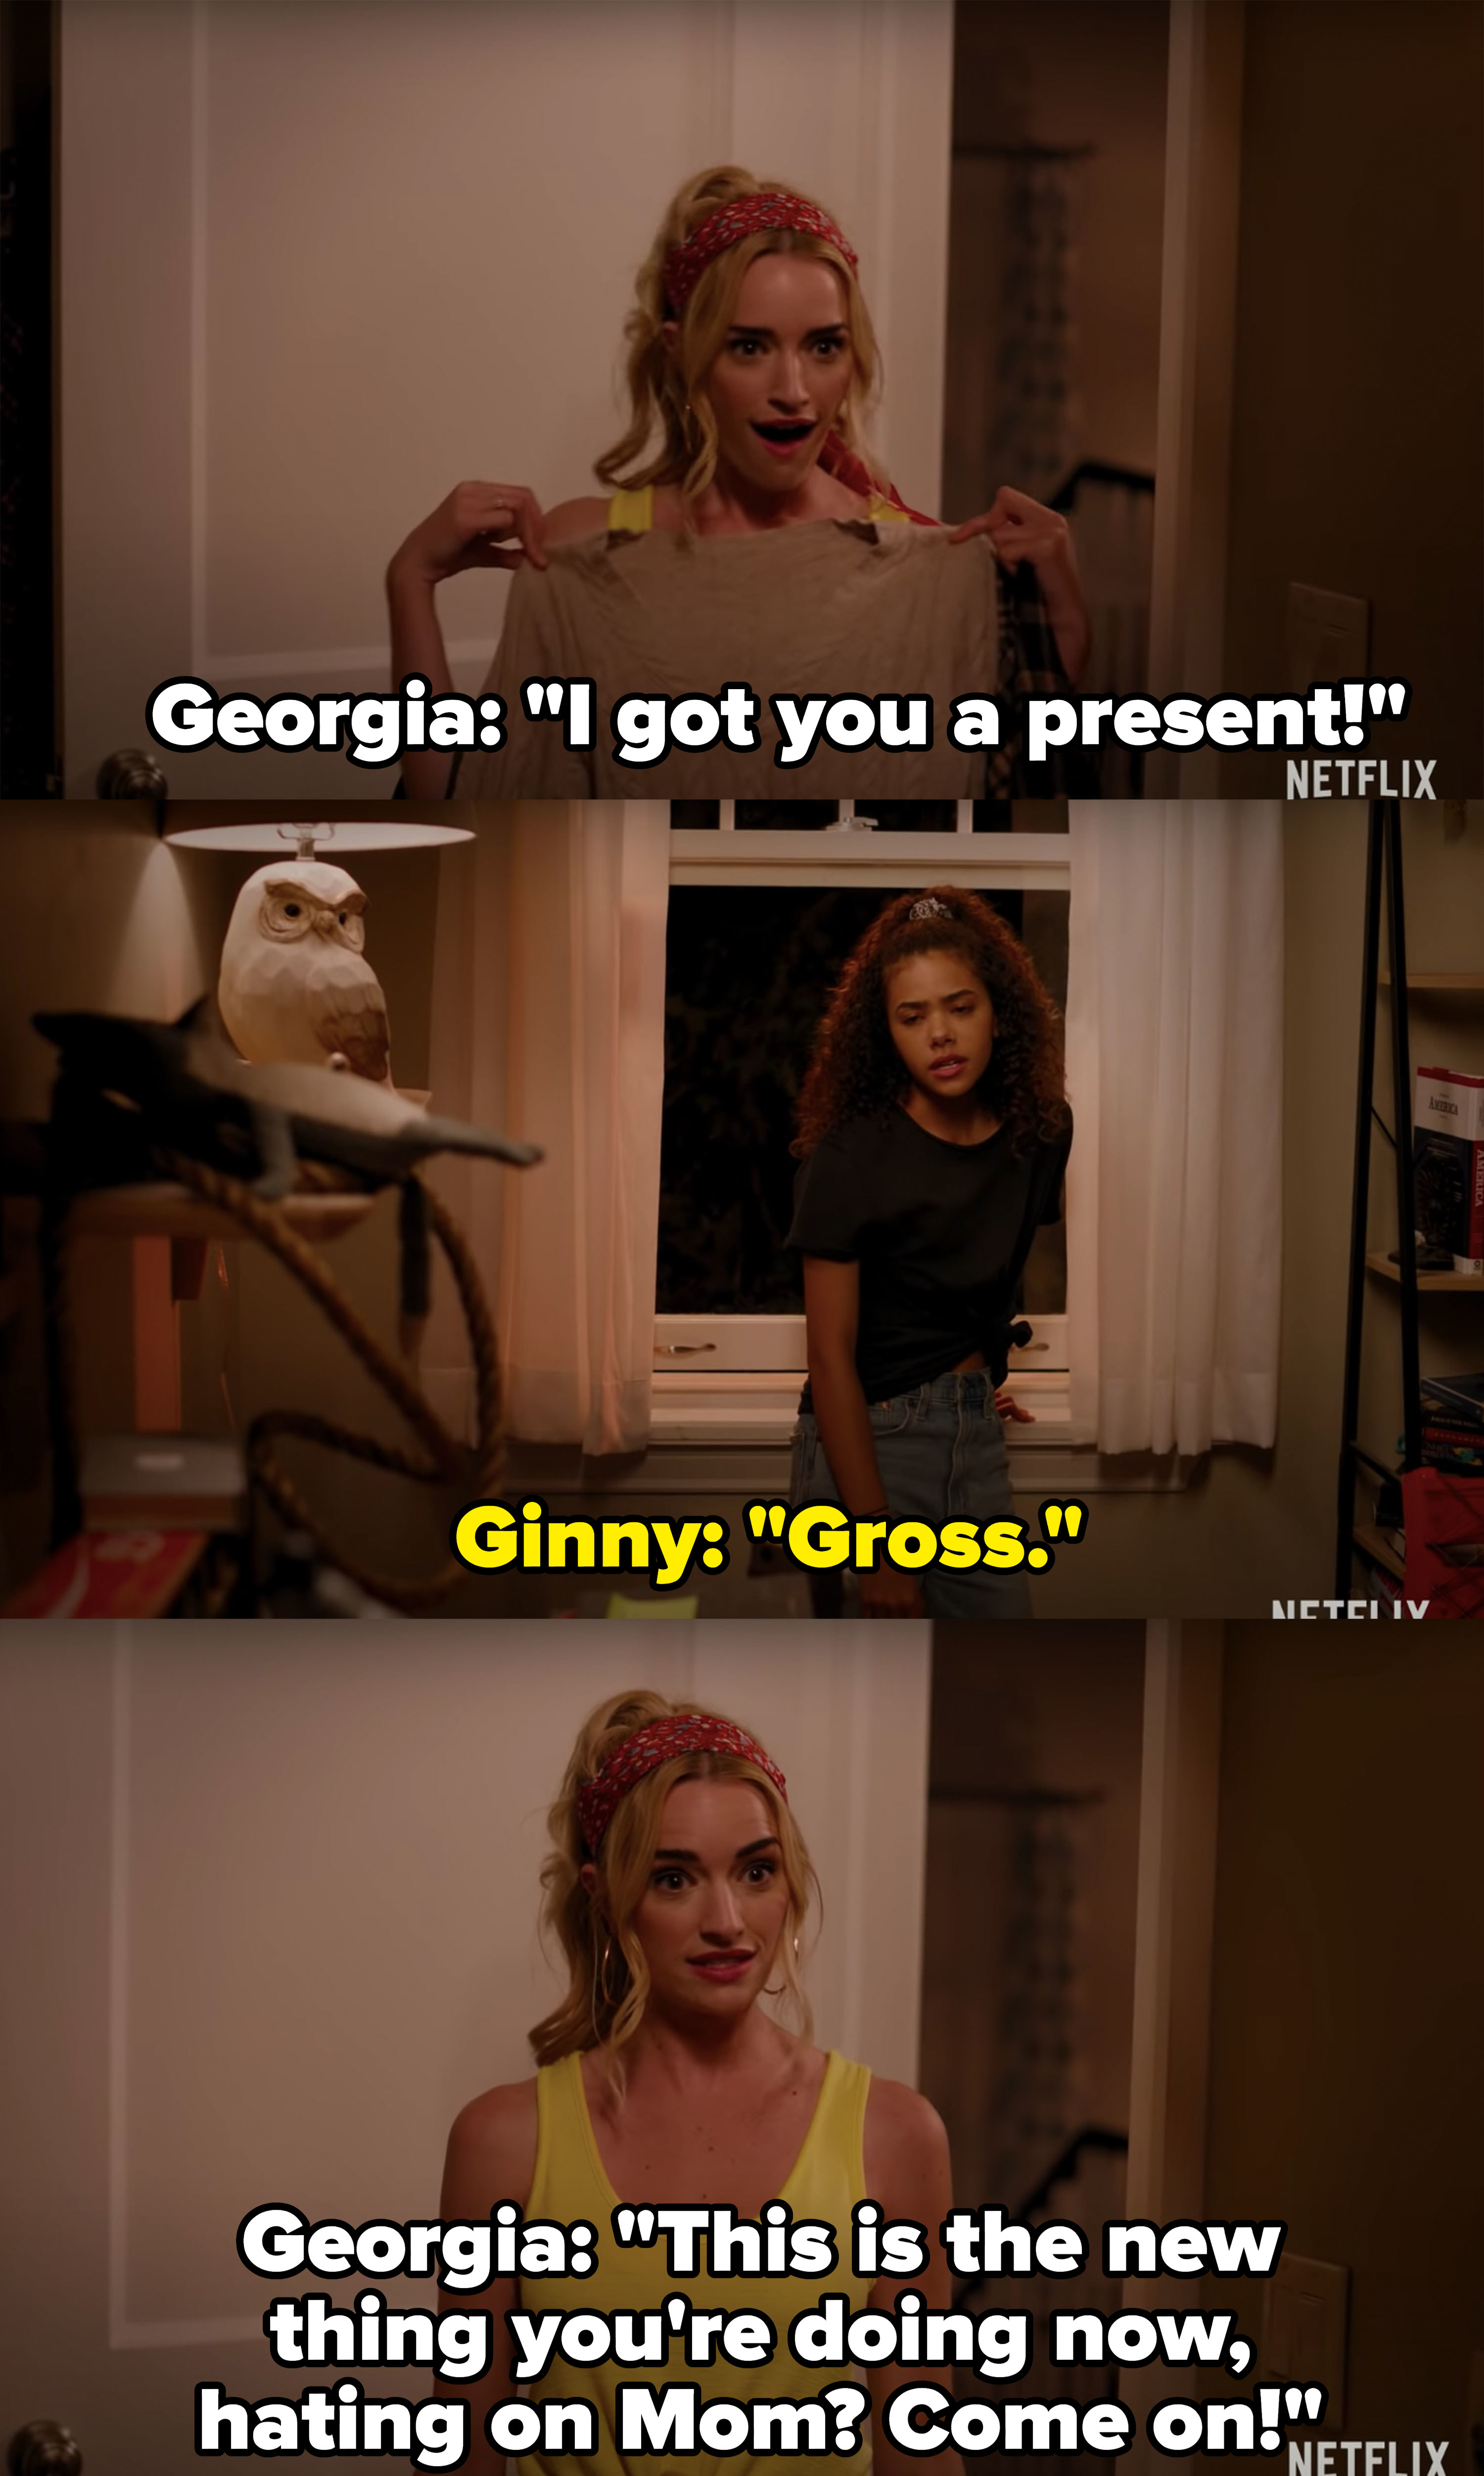 """Georgia excitedly tells Ginny she got her a sweater as a present, Ginny replies, """"gross,"""" Georgia says to stop """"hating on Mom"""""""